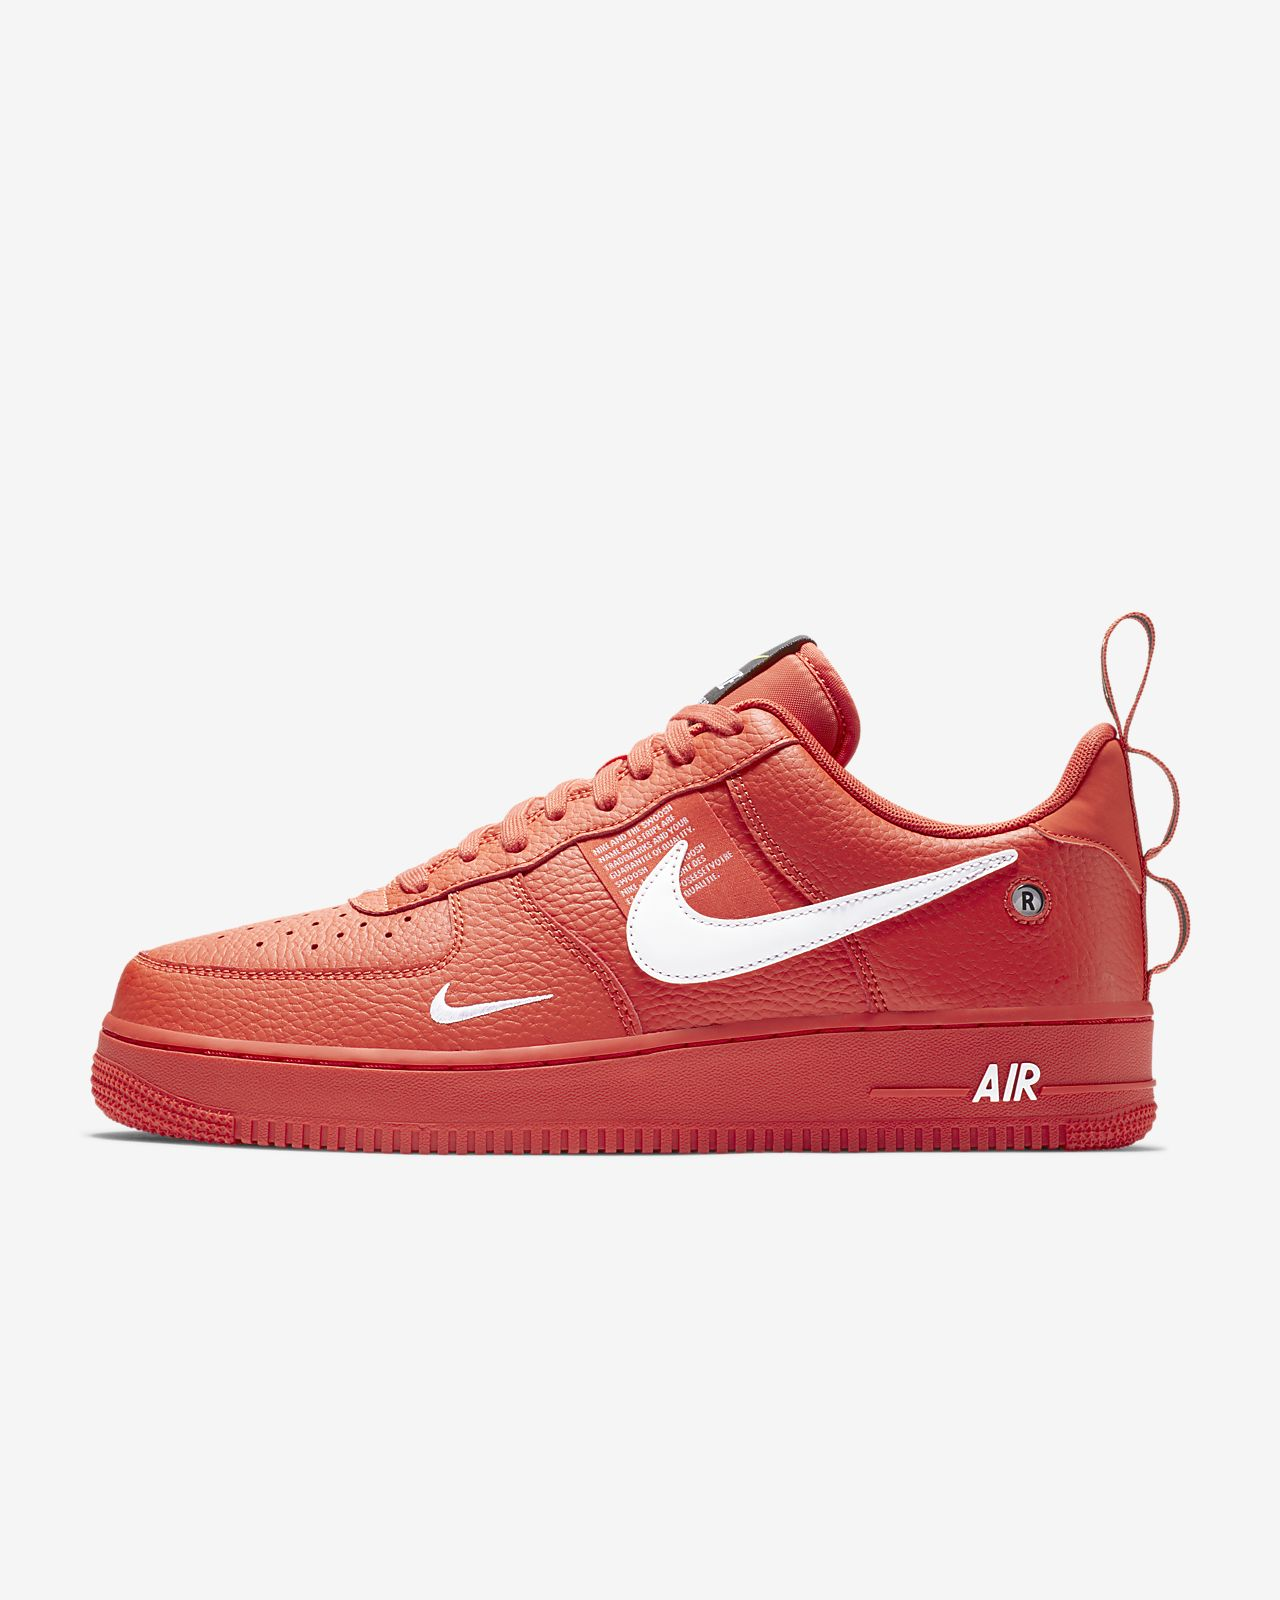 low priced a8e9d 2c948 ... Męskie buty Nike Air Force 1 07 LV8 Utility